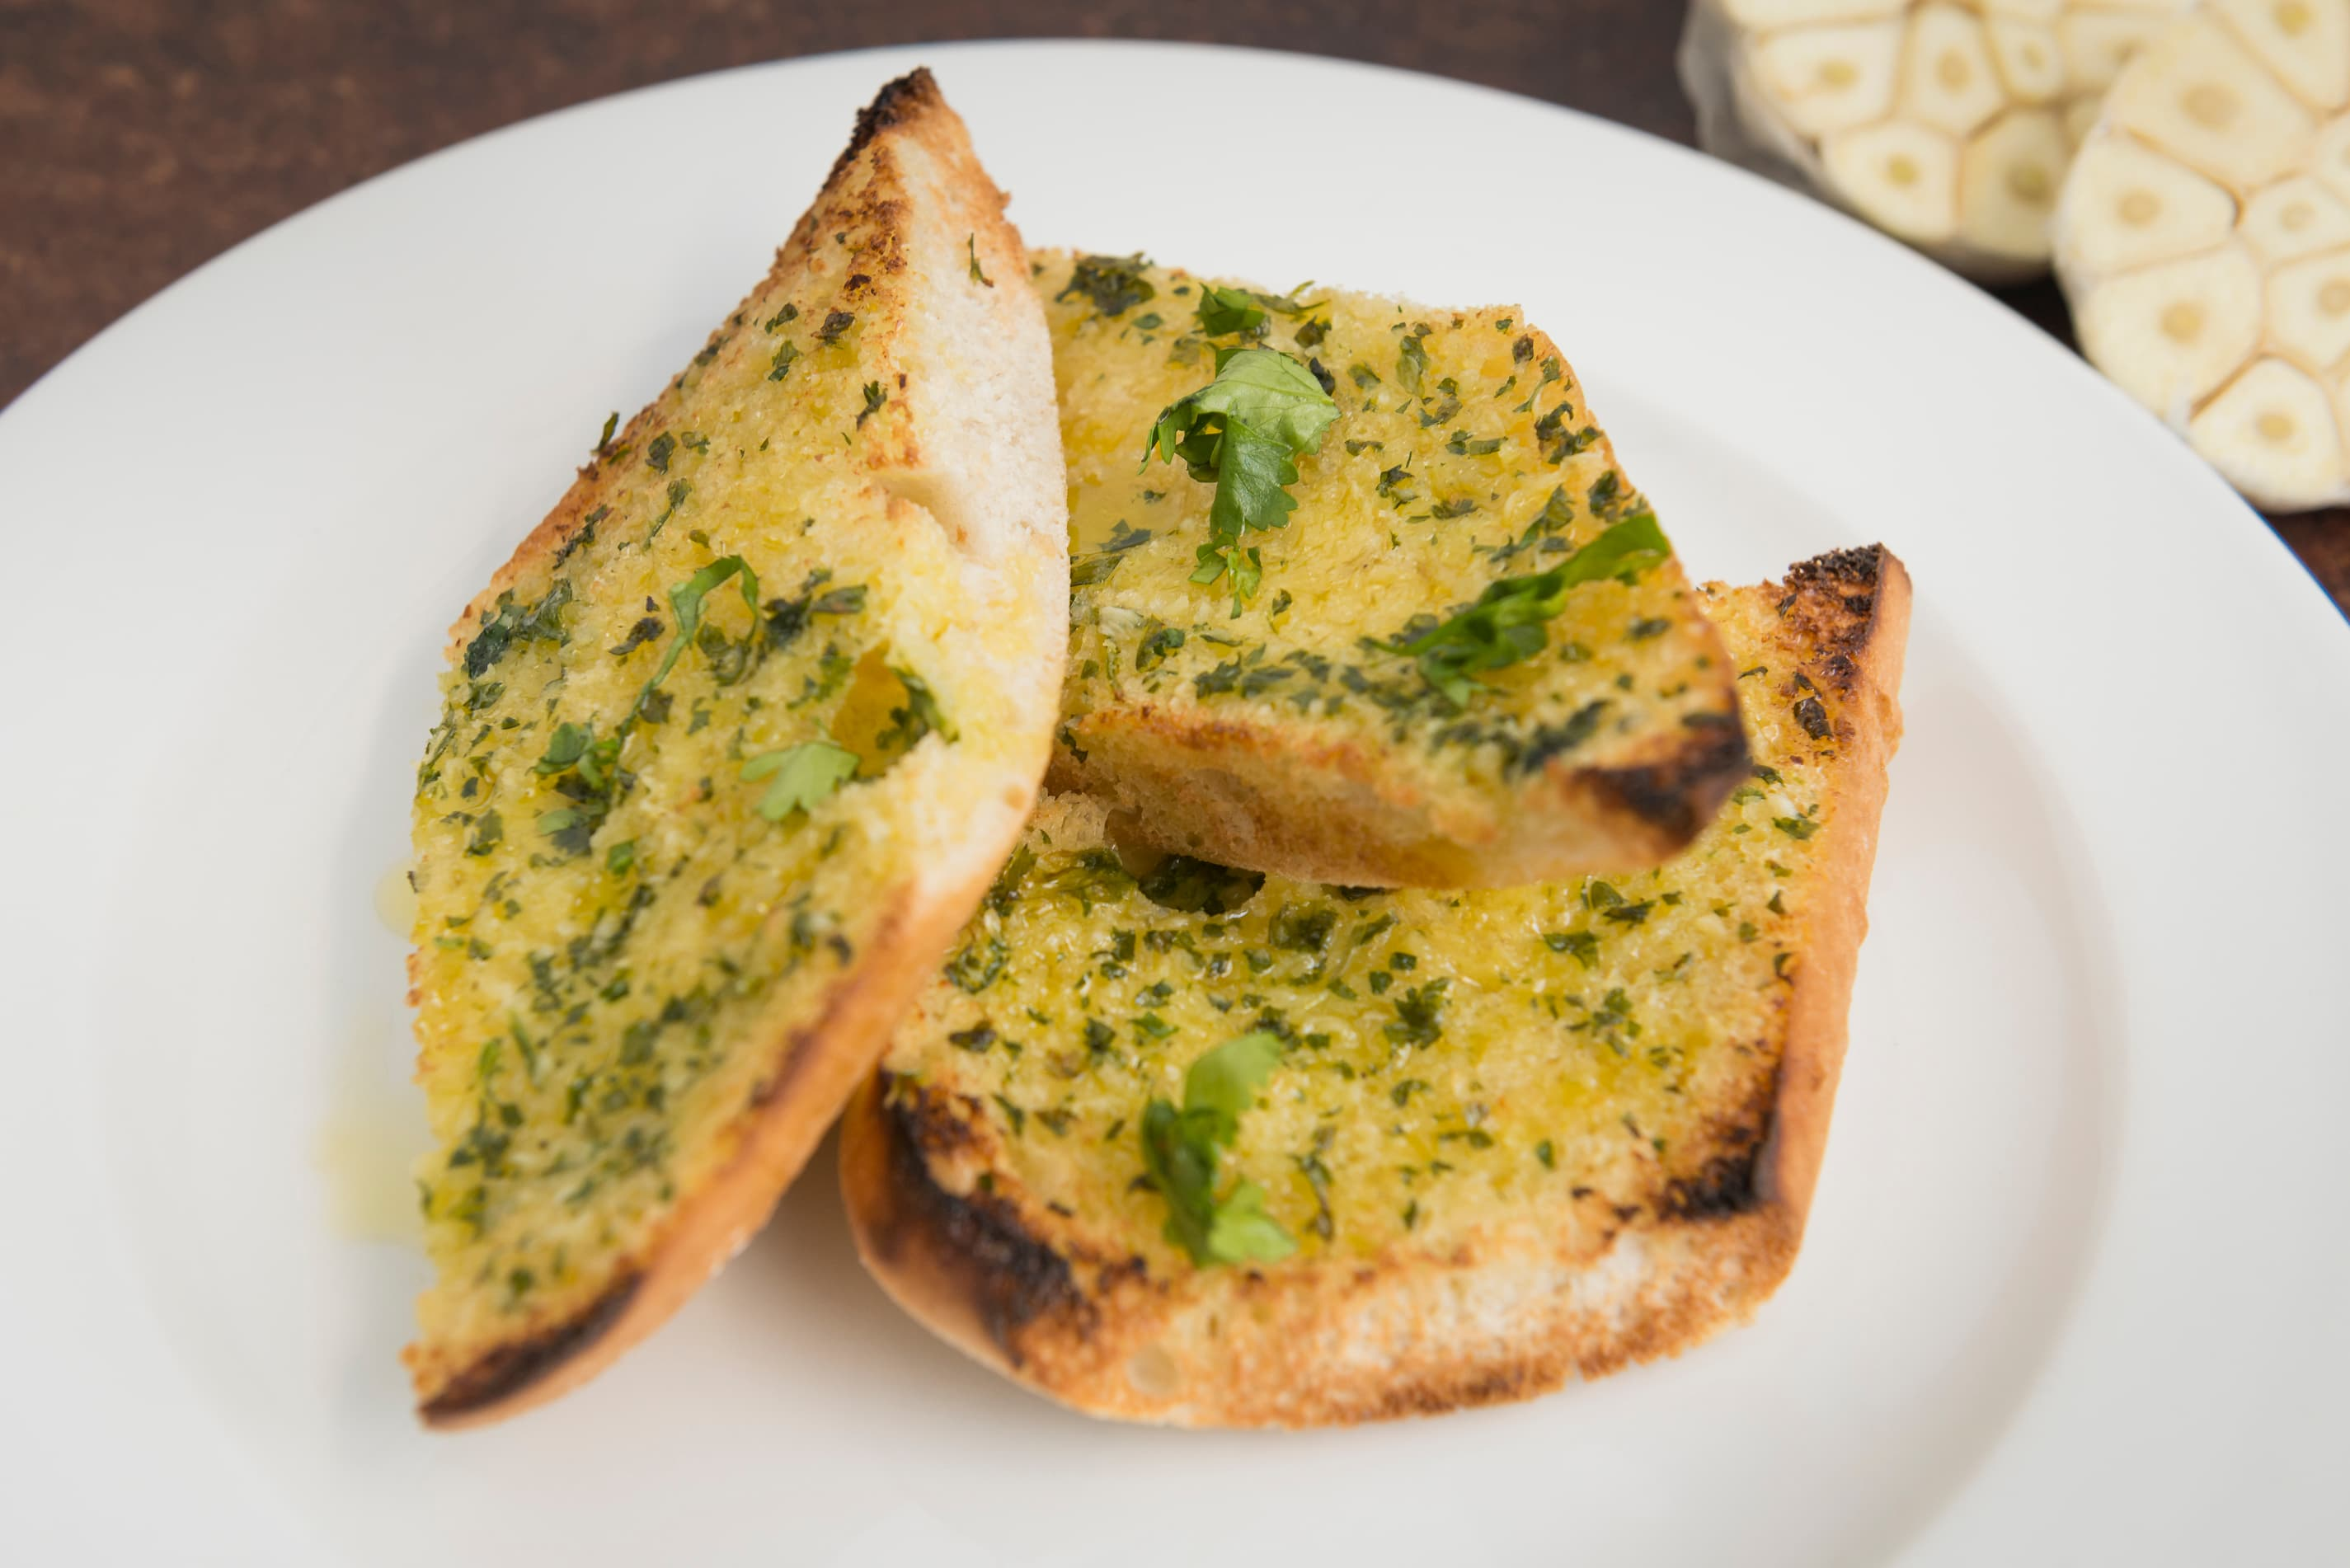 Garlic Bread To Share For 2 People (V)